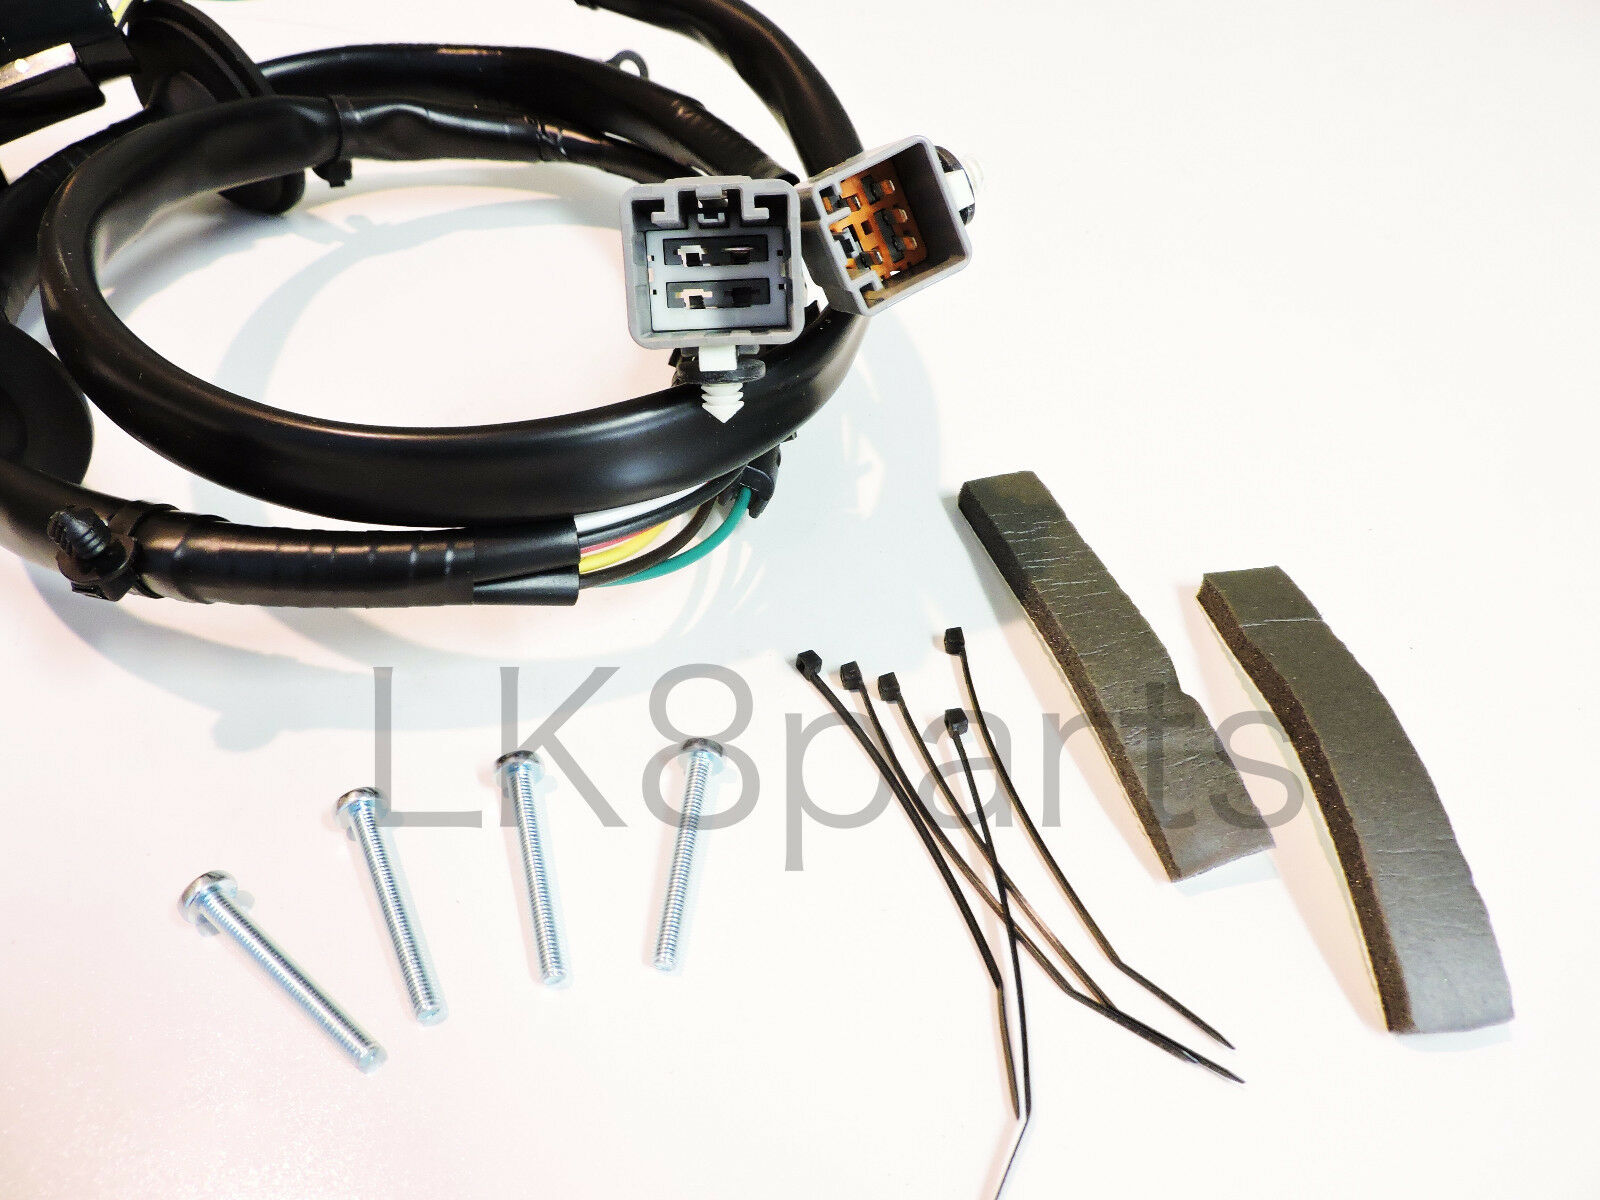 Land rover lr tow hitch trailer wiring wire harness kit